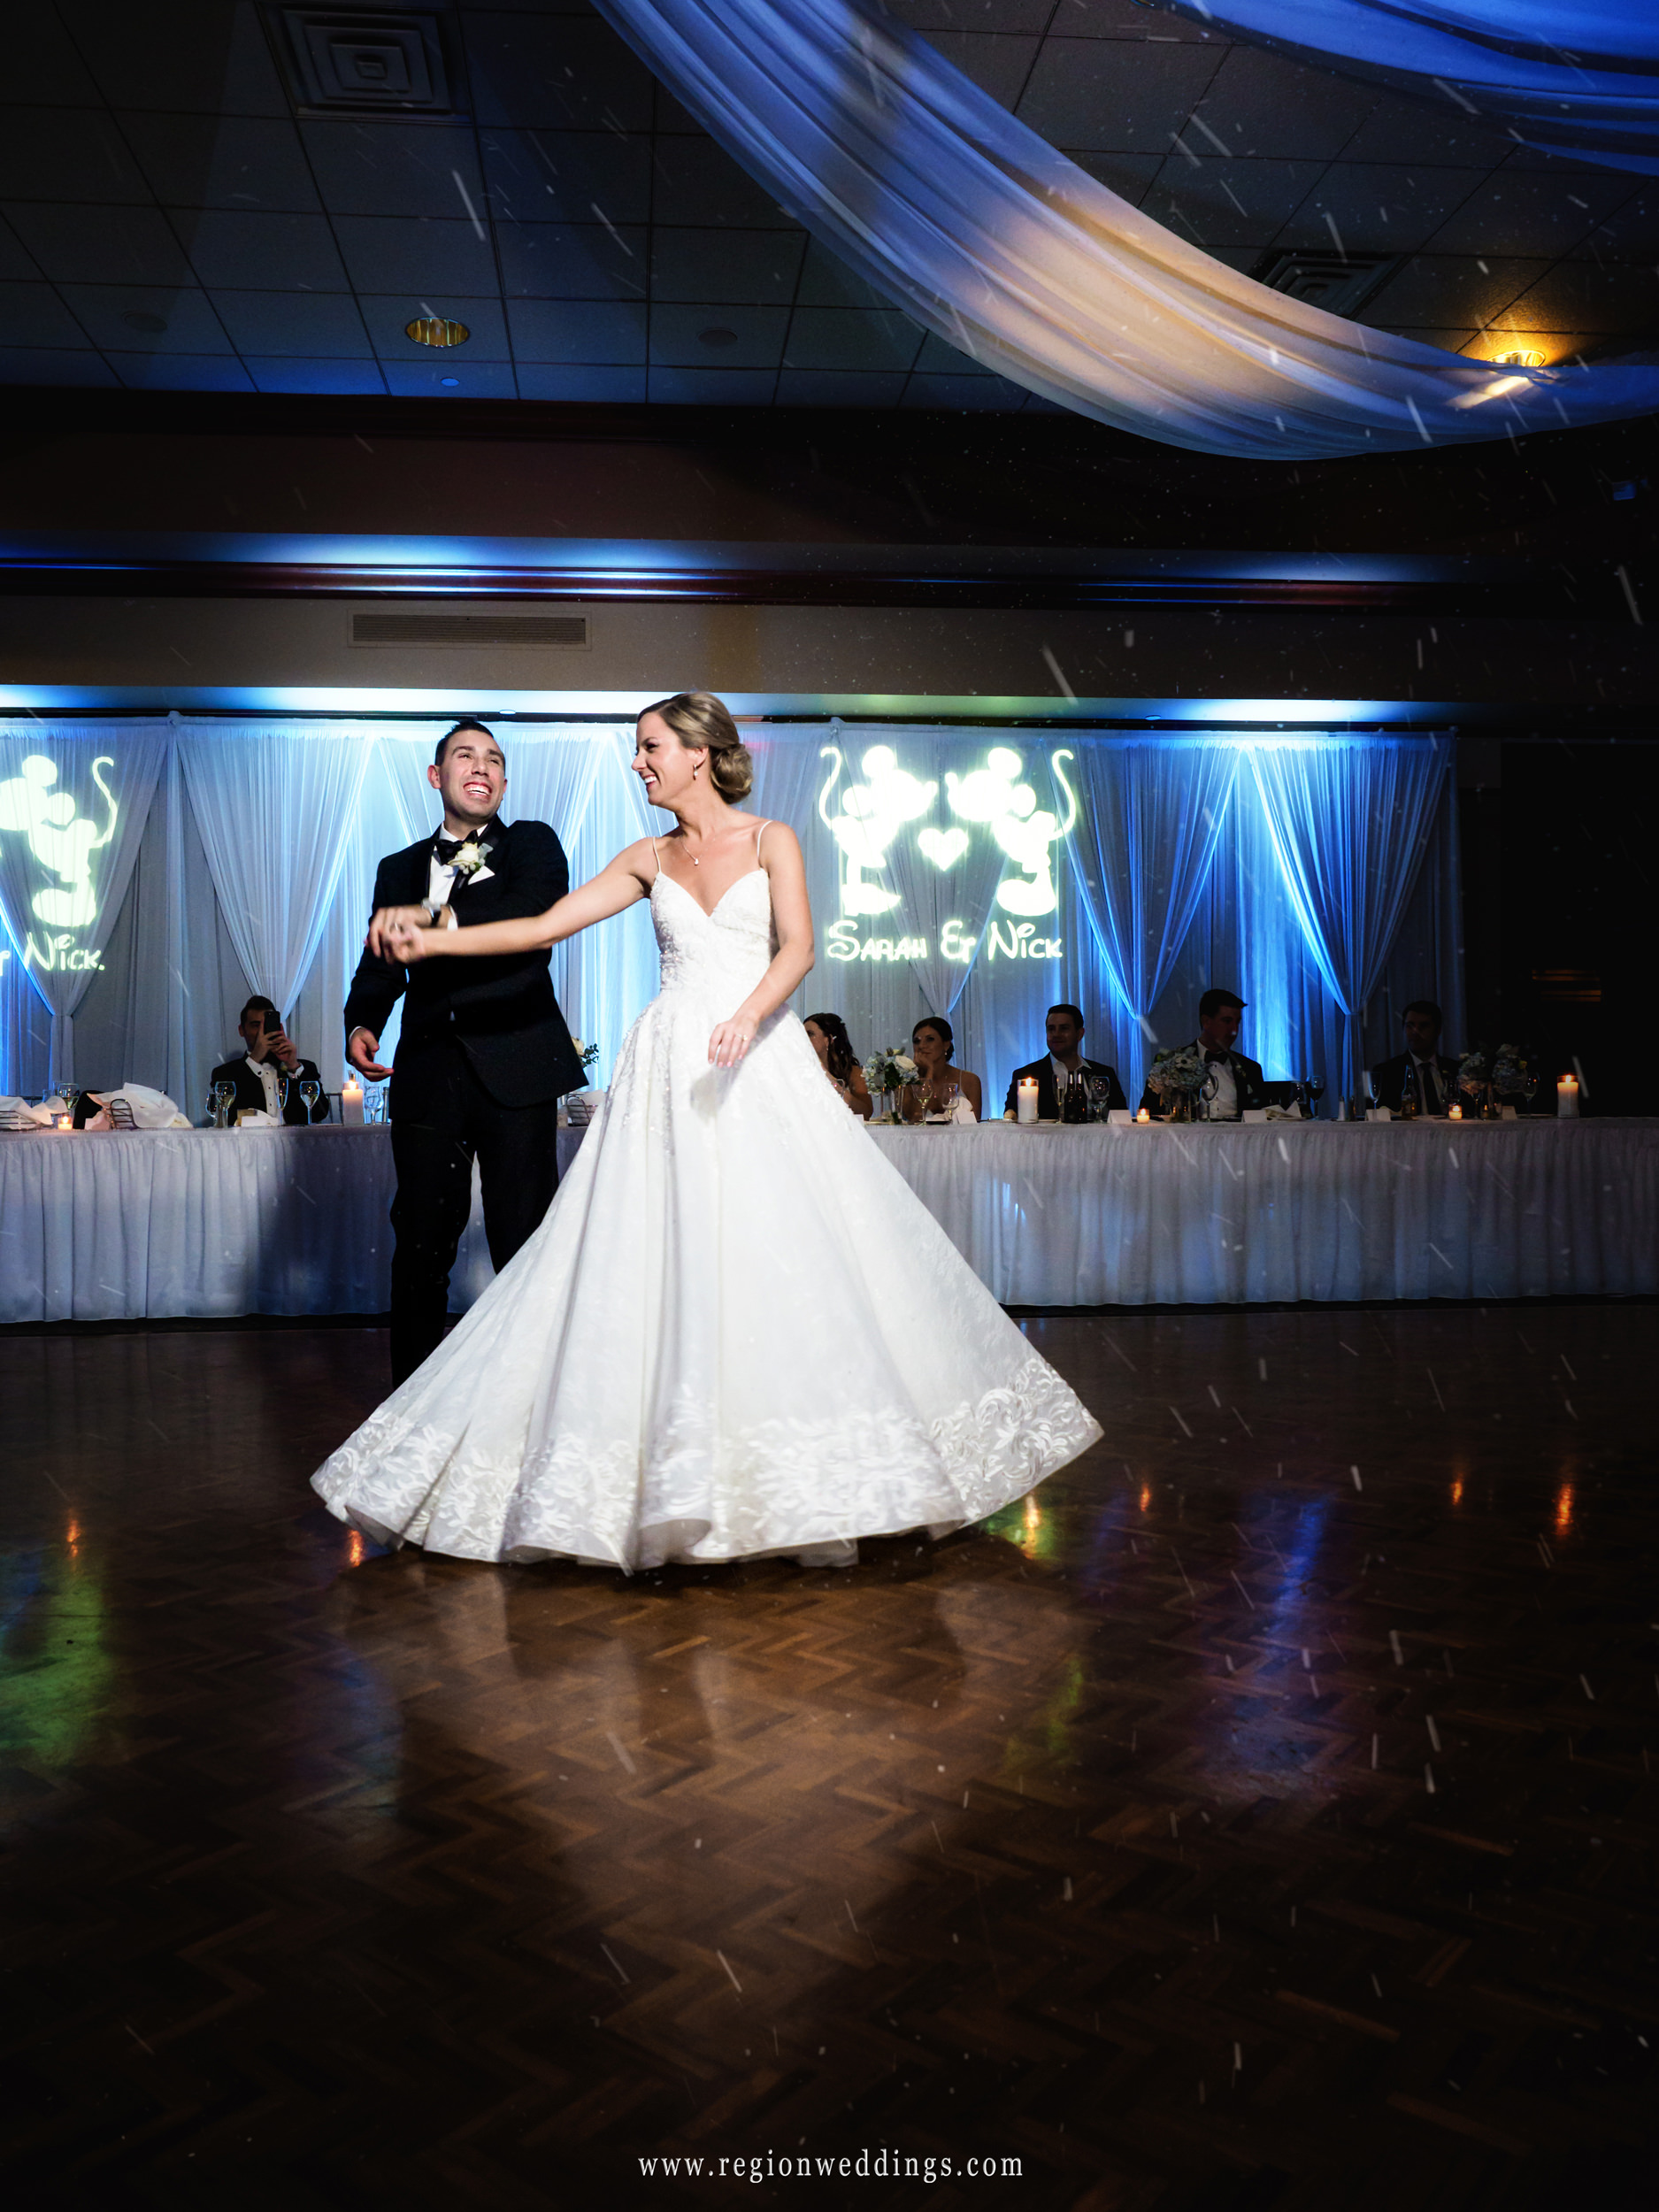 First dance for the bride and groom as snow falls upon them.